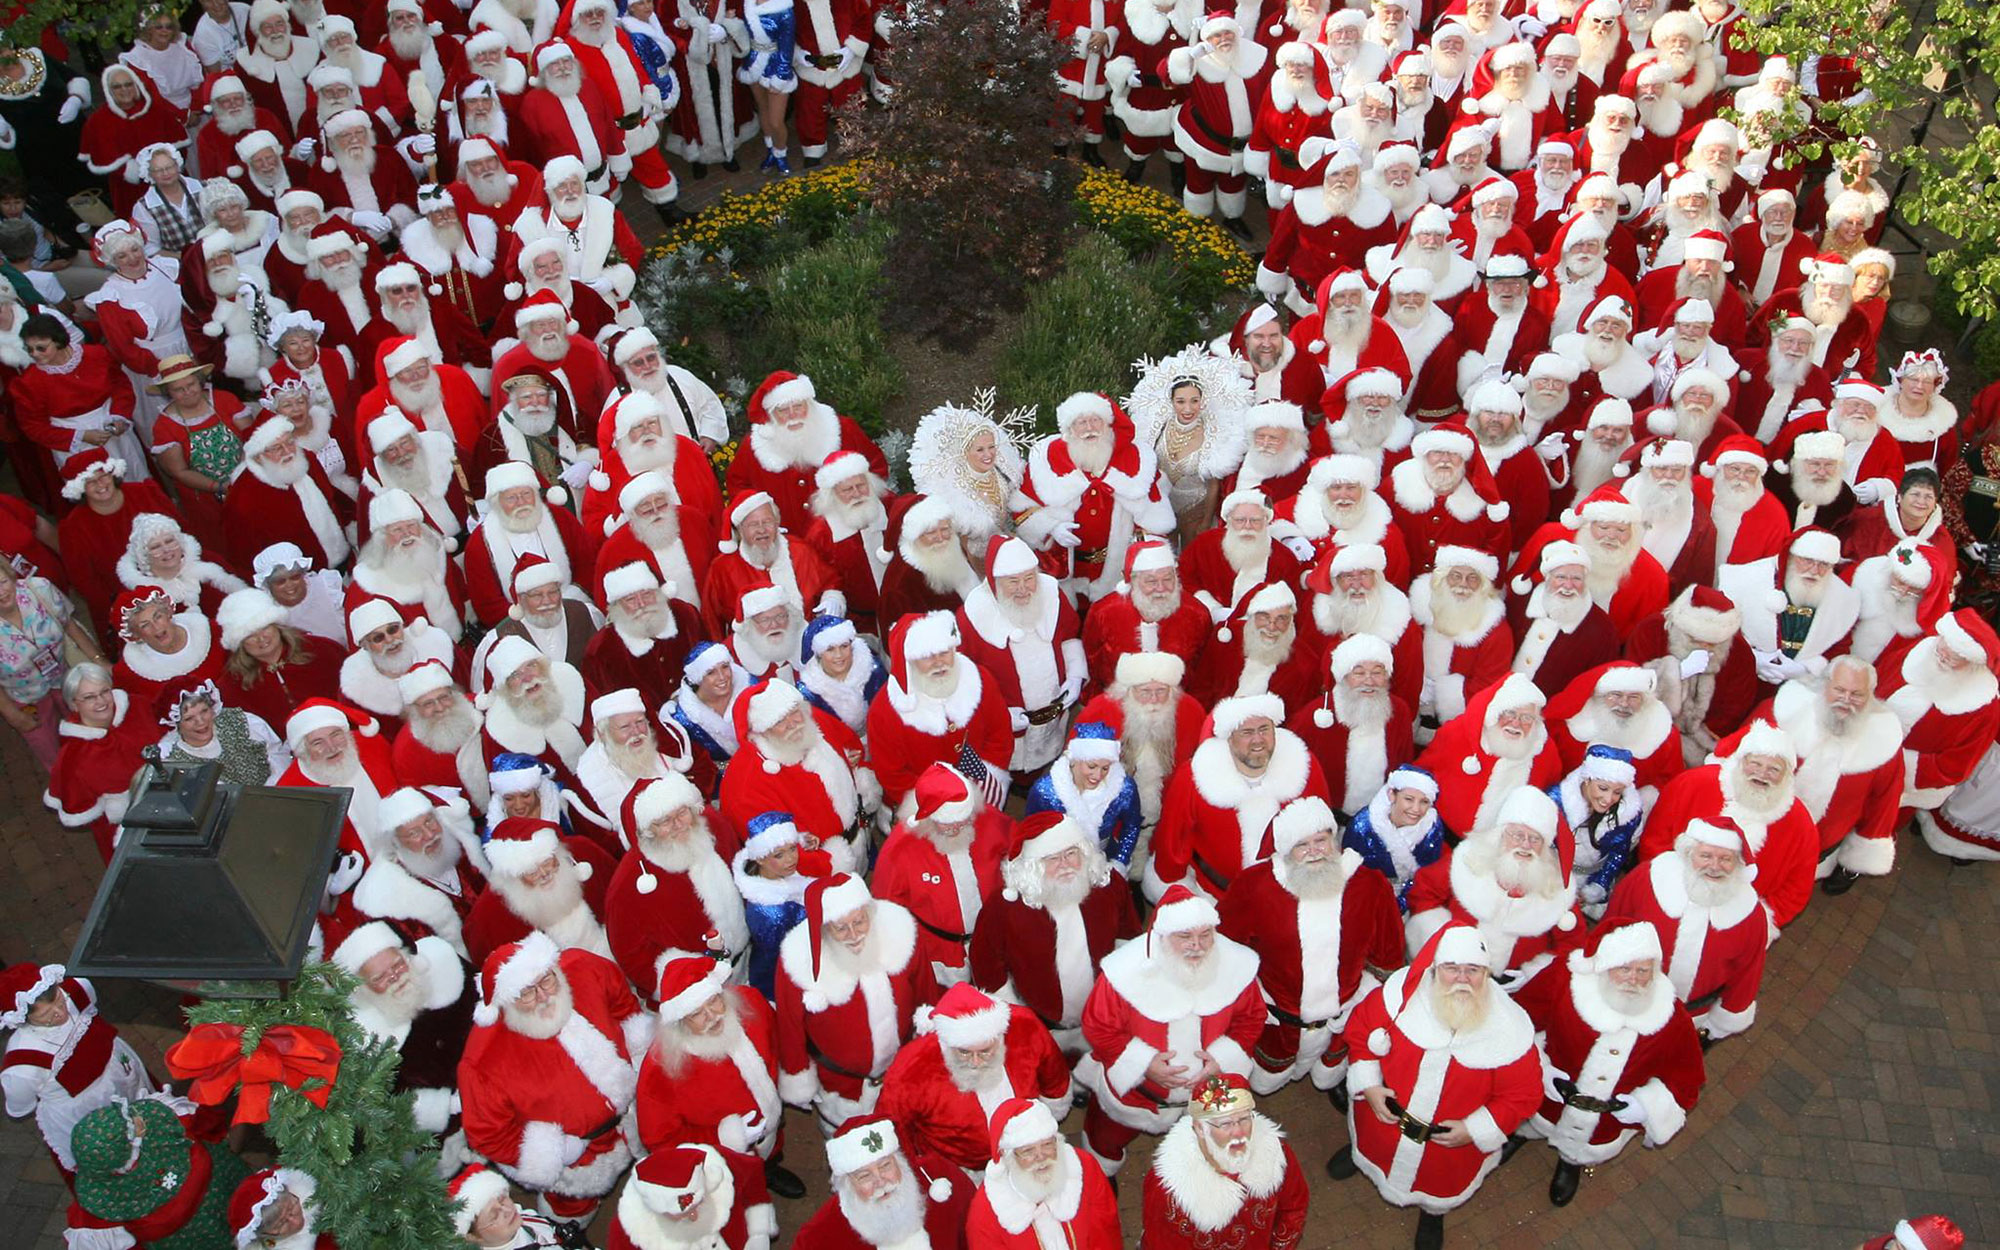 Thousands of Santas to Gather in Missouri This Summer